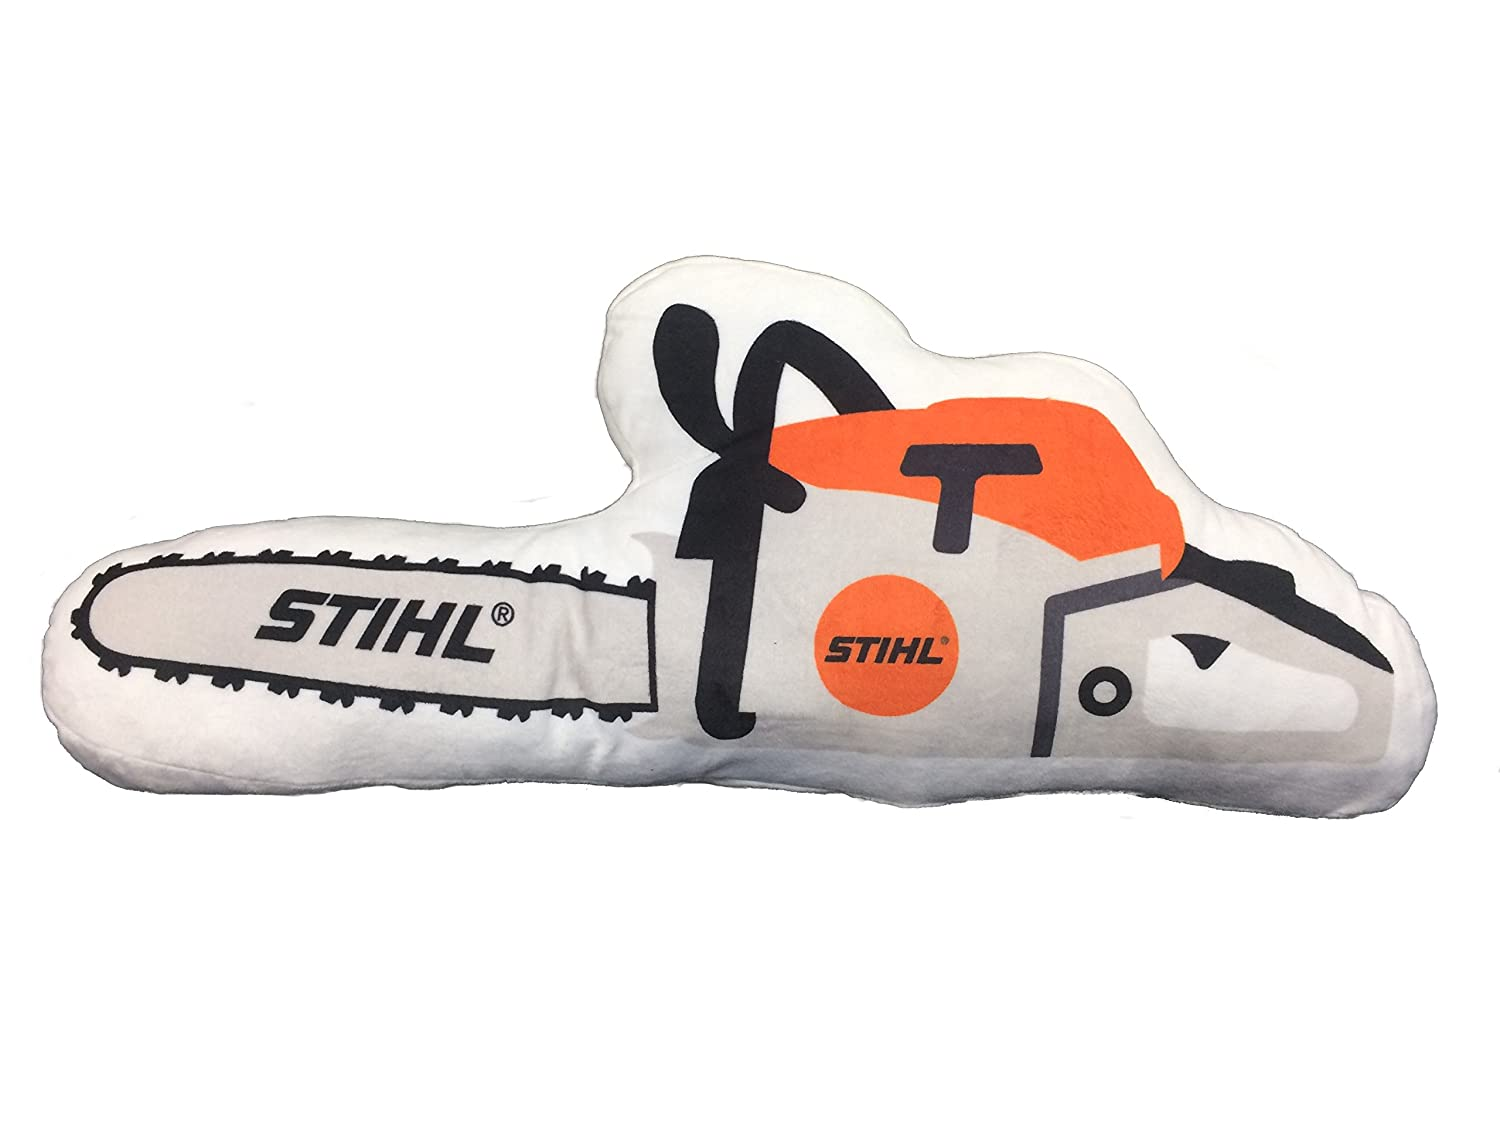 Stihl cushion in chainsaw shape made of soft plush material Length approx 50 cm